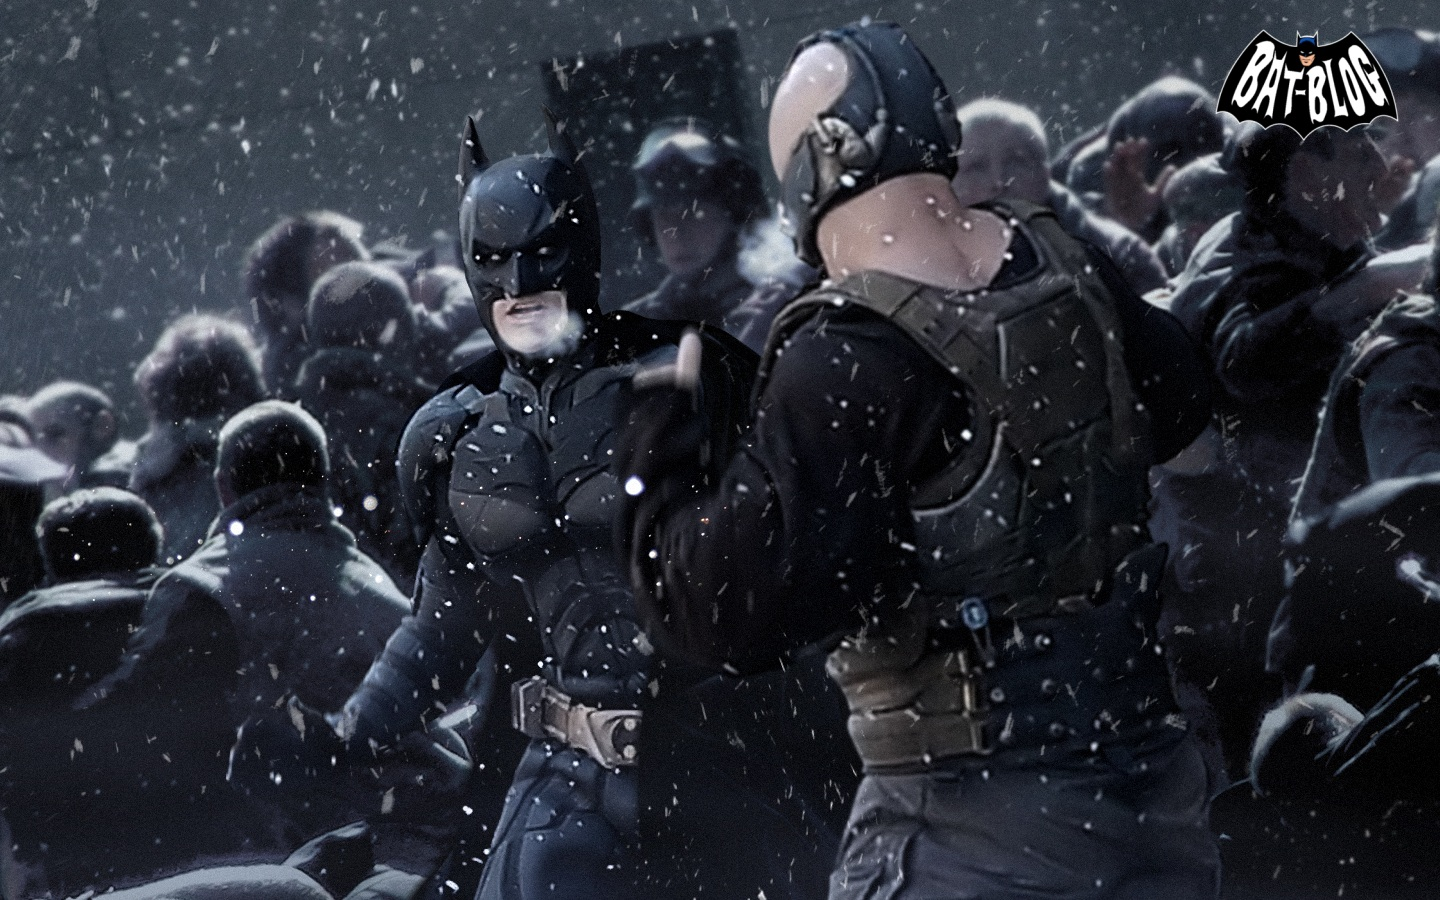 http://4.bp.blogspot.com/-QFt7sHoT_Hs/UA3KCkOeedI/AAAAAAAAA54/ofWd8BqWWFk/s1600/wallpaper-the-dark-knight-rises-batman-movie-bane-on-set-action.jpg